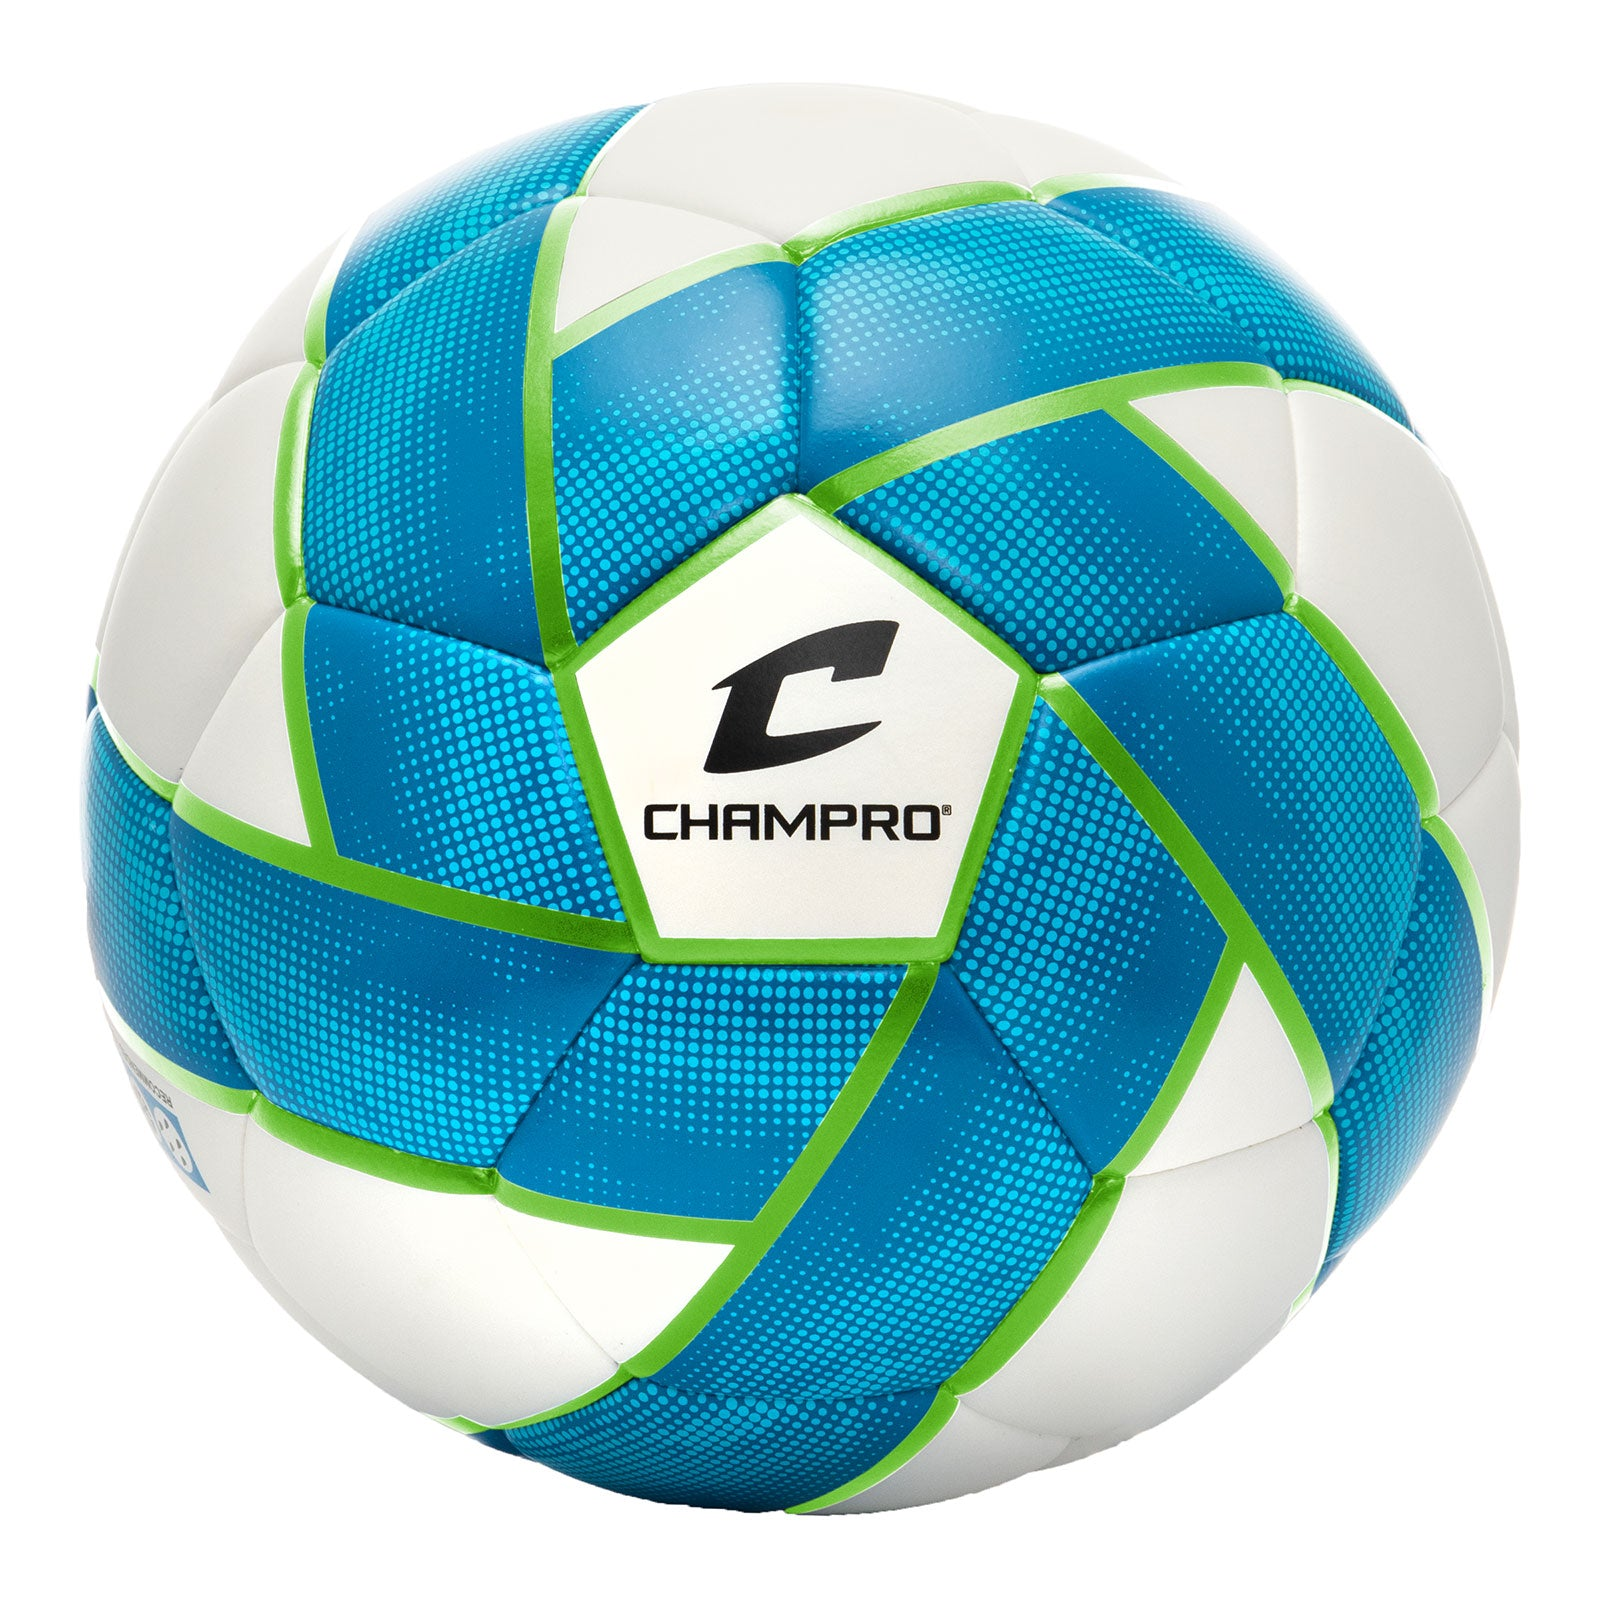 Catalyst Soccer Ball 1600